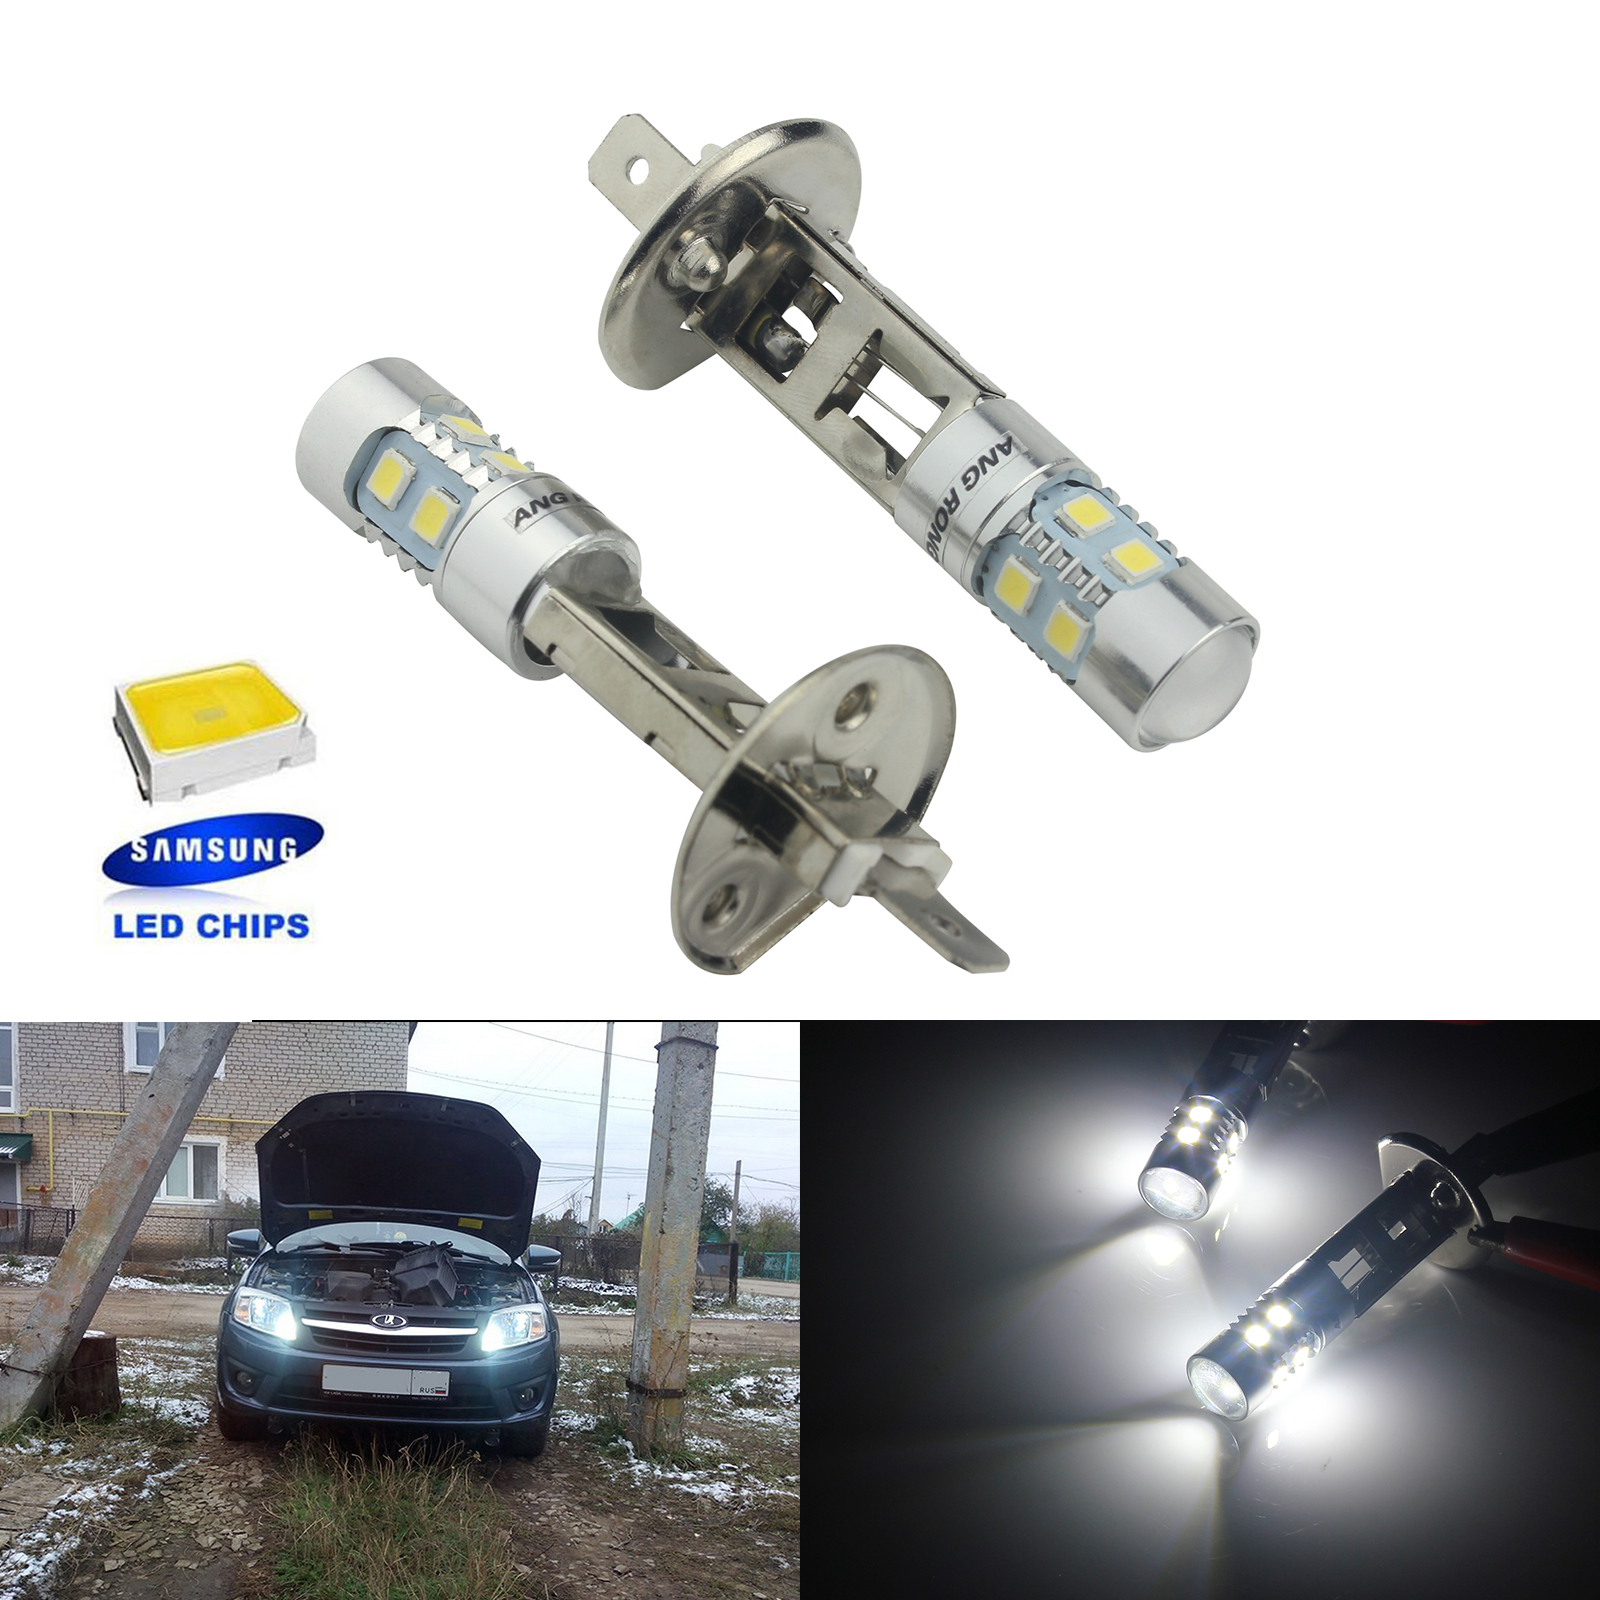 ANGRONG 2X 10W SAMSUNG LED H1 448 Bulbs Headlight High Main Beam Fog Light Lamp 6000k White